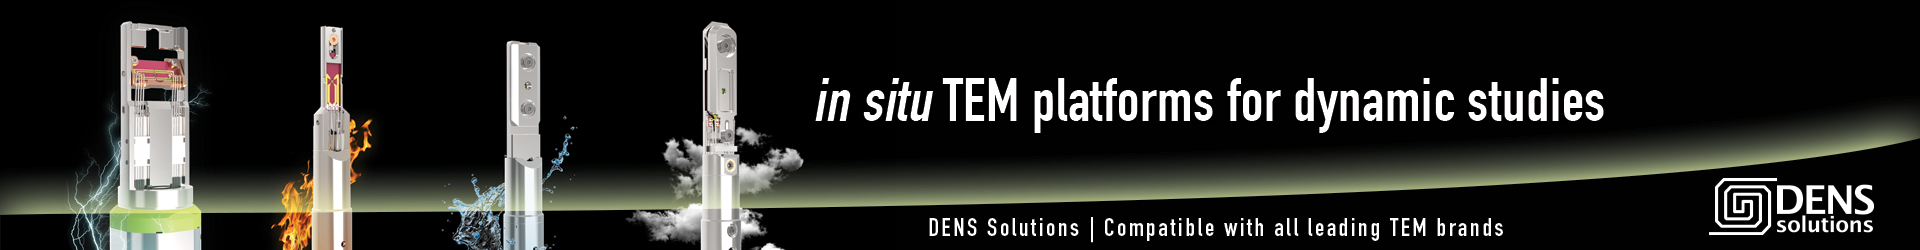 DENS Solutions in situ TEM platforms